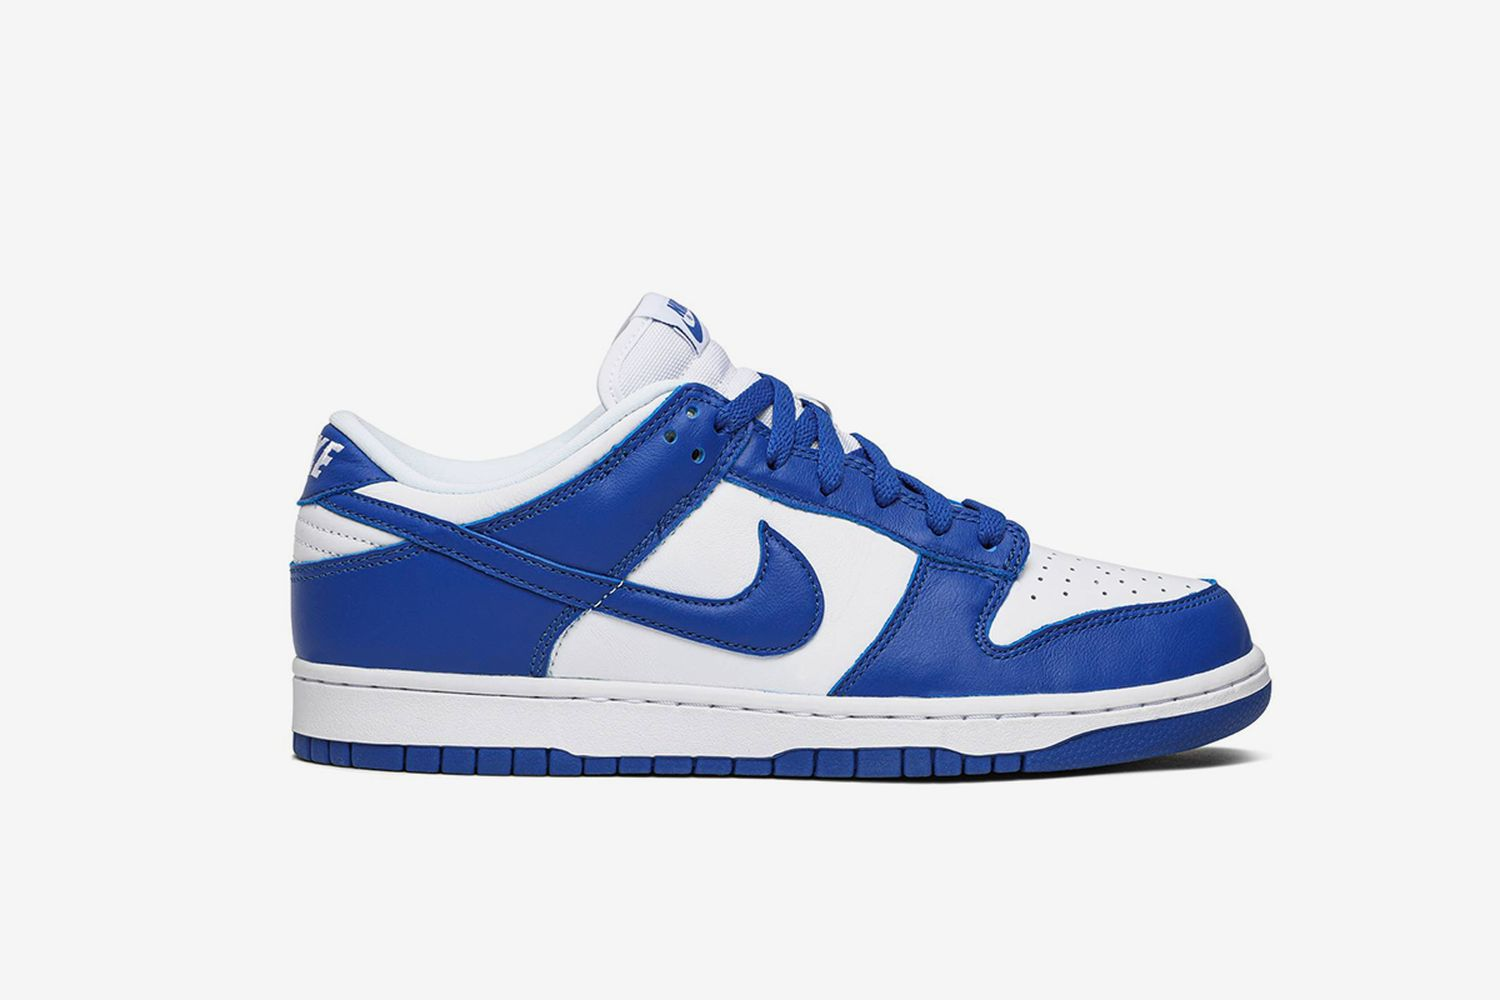 Dunk Low Retro SP 'Kentucky'